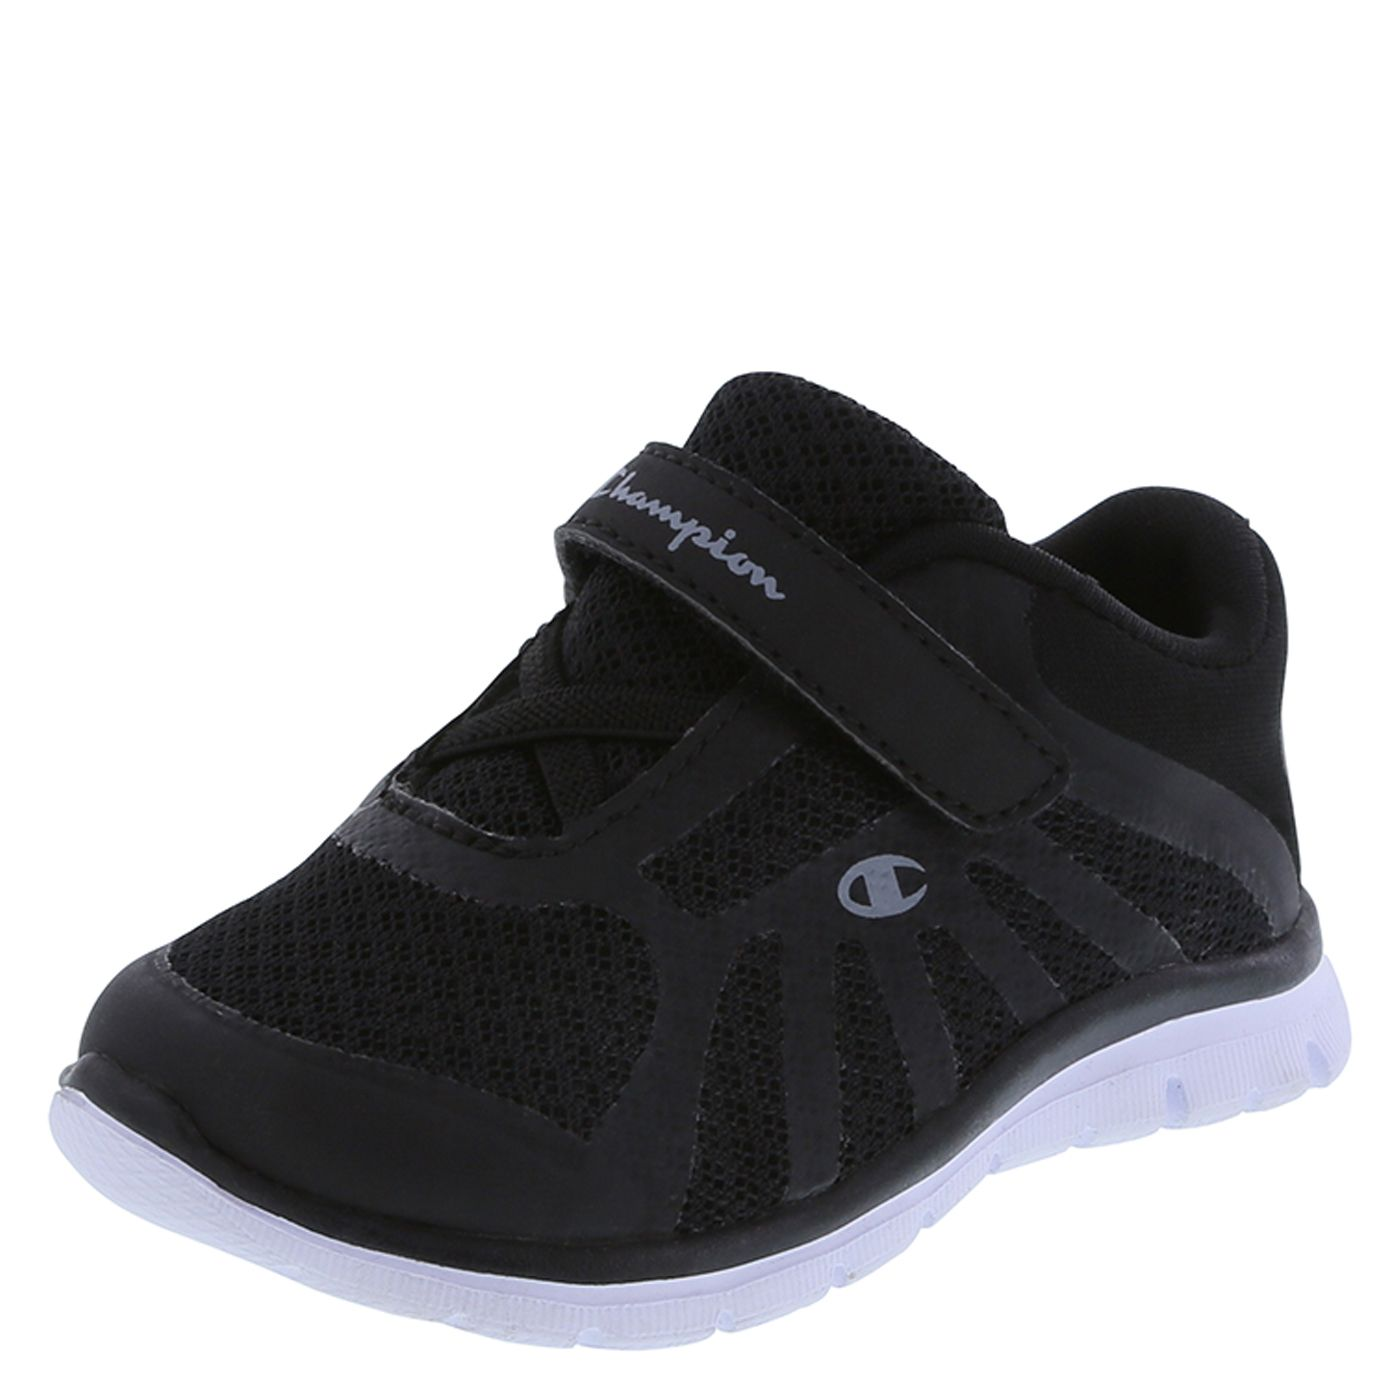 486fa5794688a Champions Shoe Payless Shoe Black